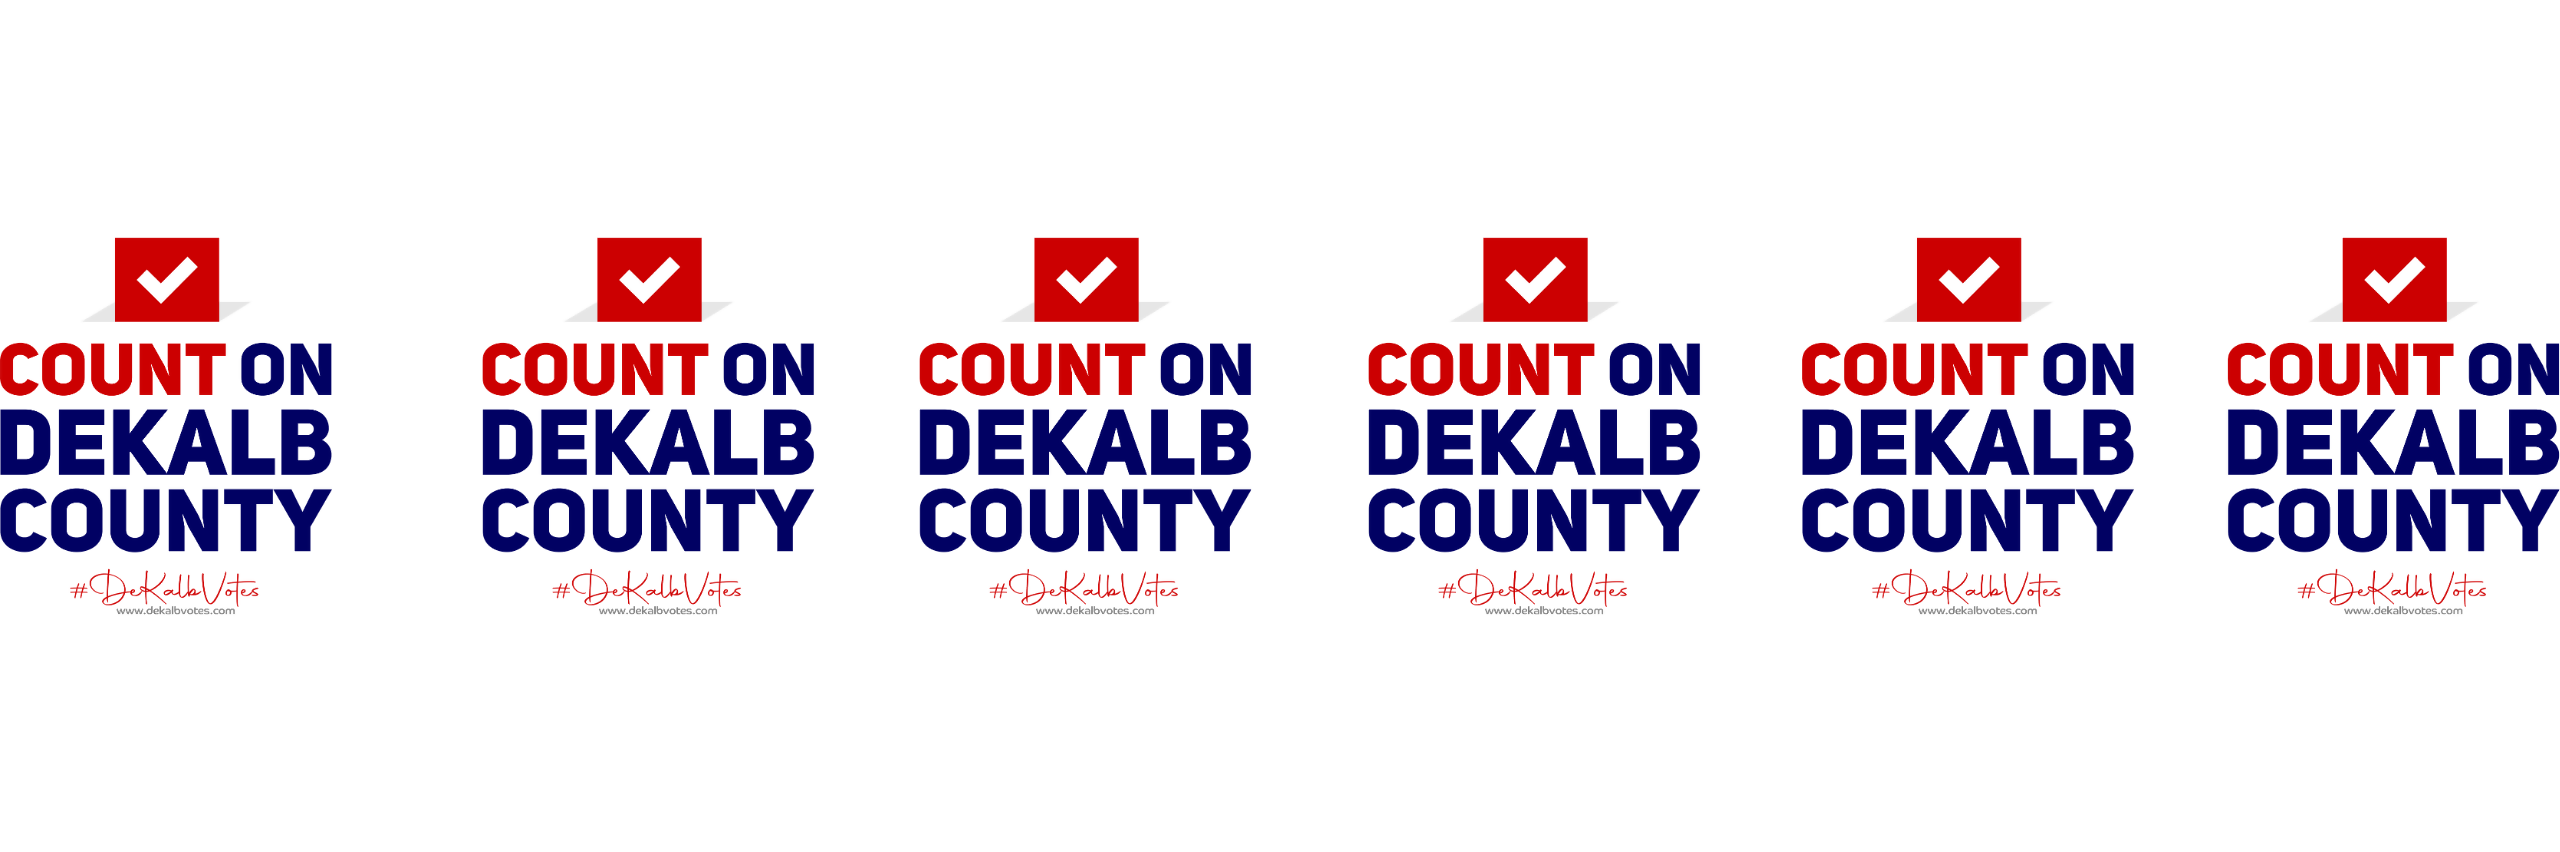 Welcome to the Count on DeKalb page.